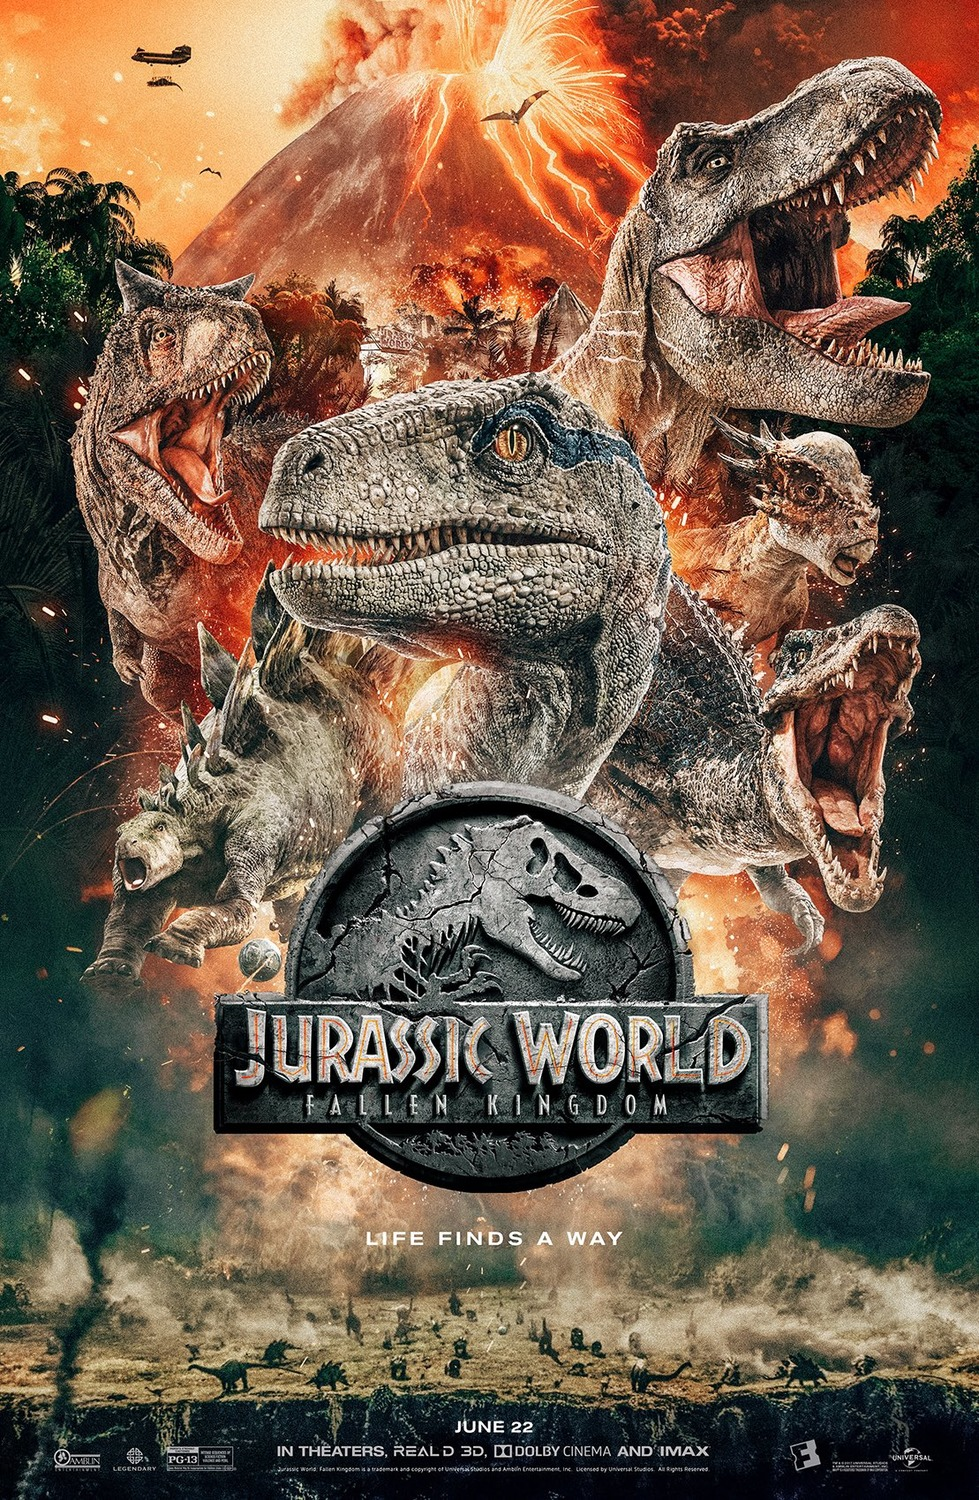 Jurassic World : Fallen Kingdom Streaming Gratuit Vf : jurassic, world, fallen, kingdom, streaming, gratuit, Steam, Community, [!VOSTFR!-FiLM], Jurassic, World, Fallen, Kingdom, Complet